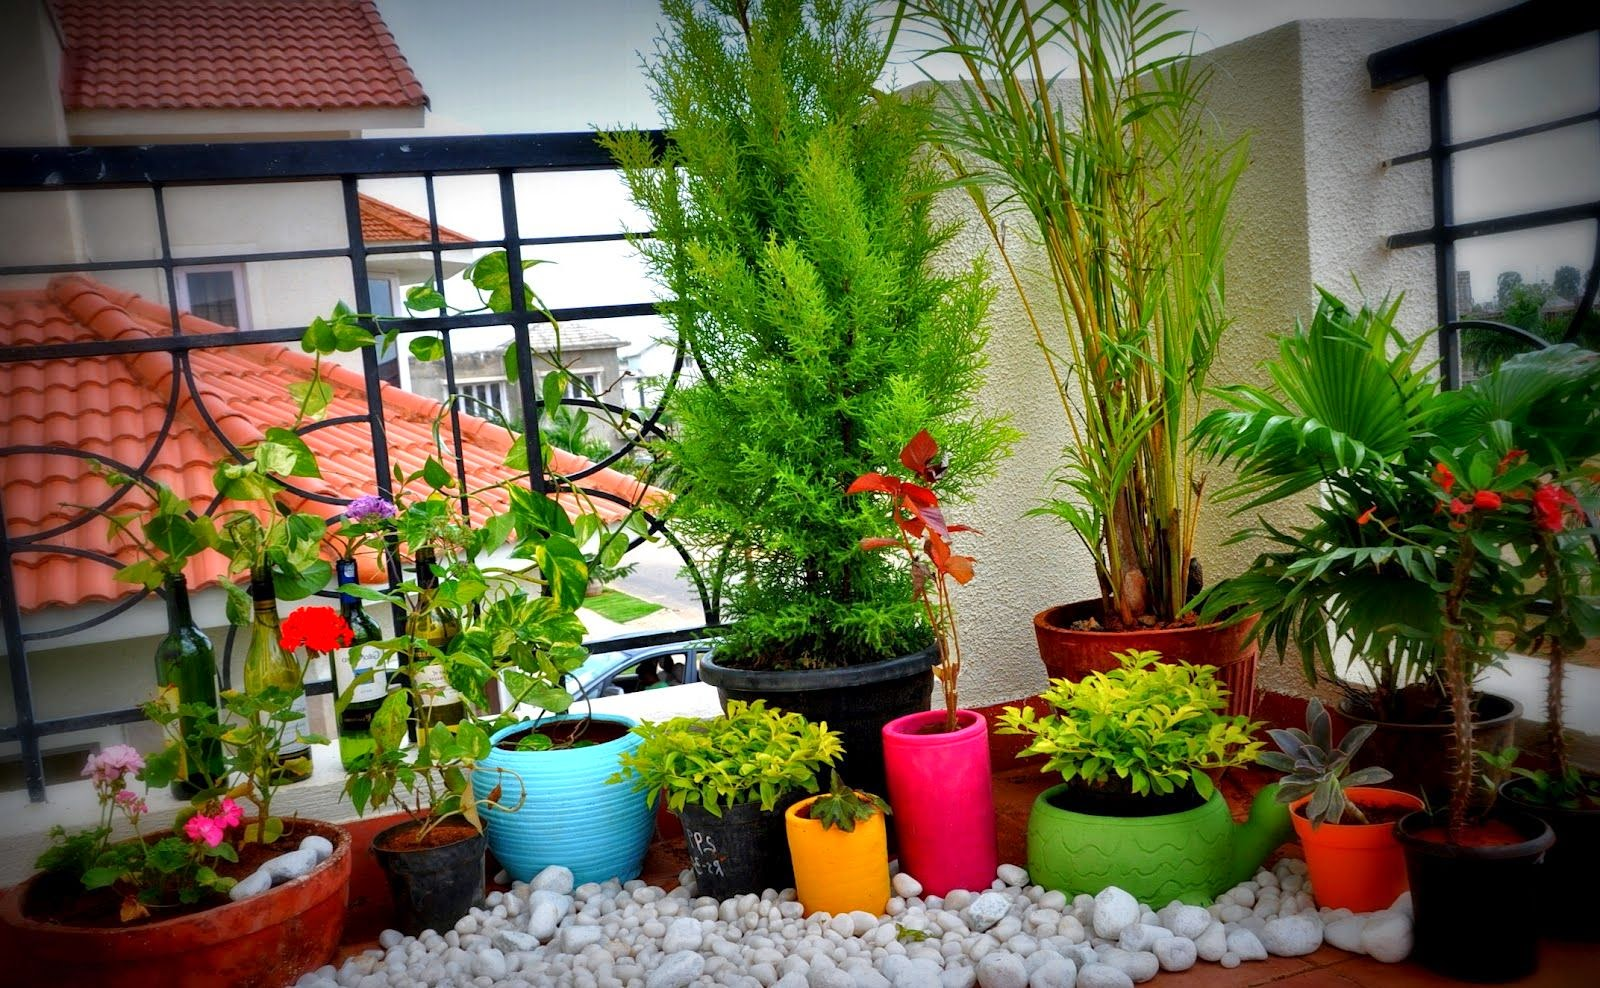 Home garden design for small spaces for Small terrace garden ideas